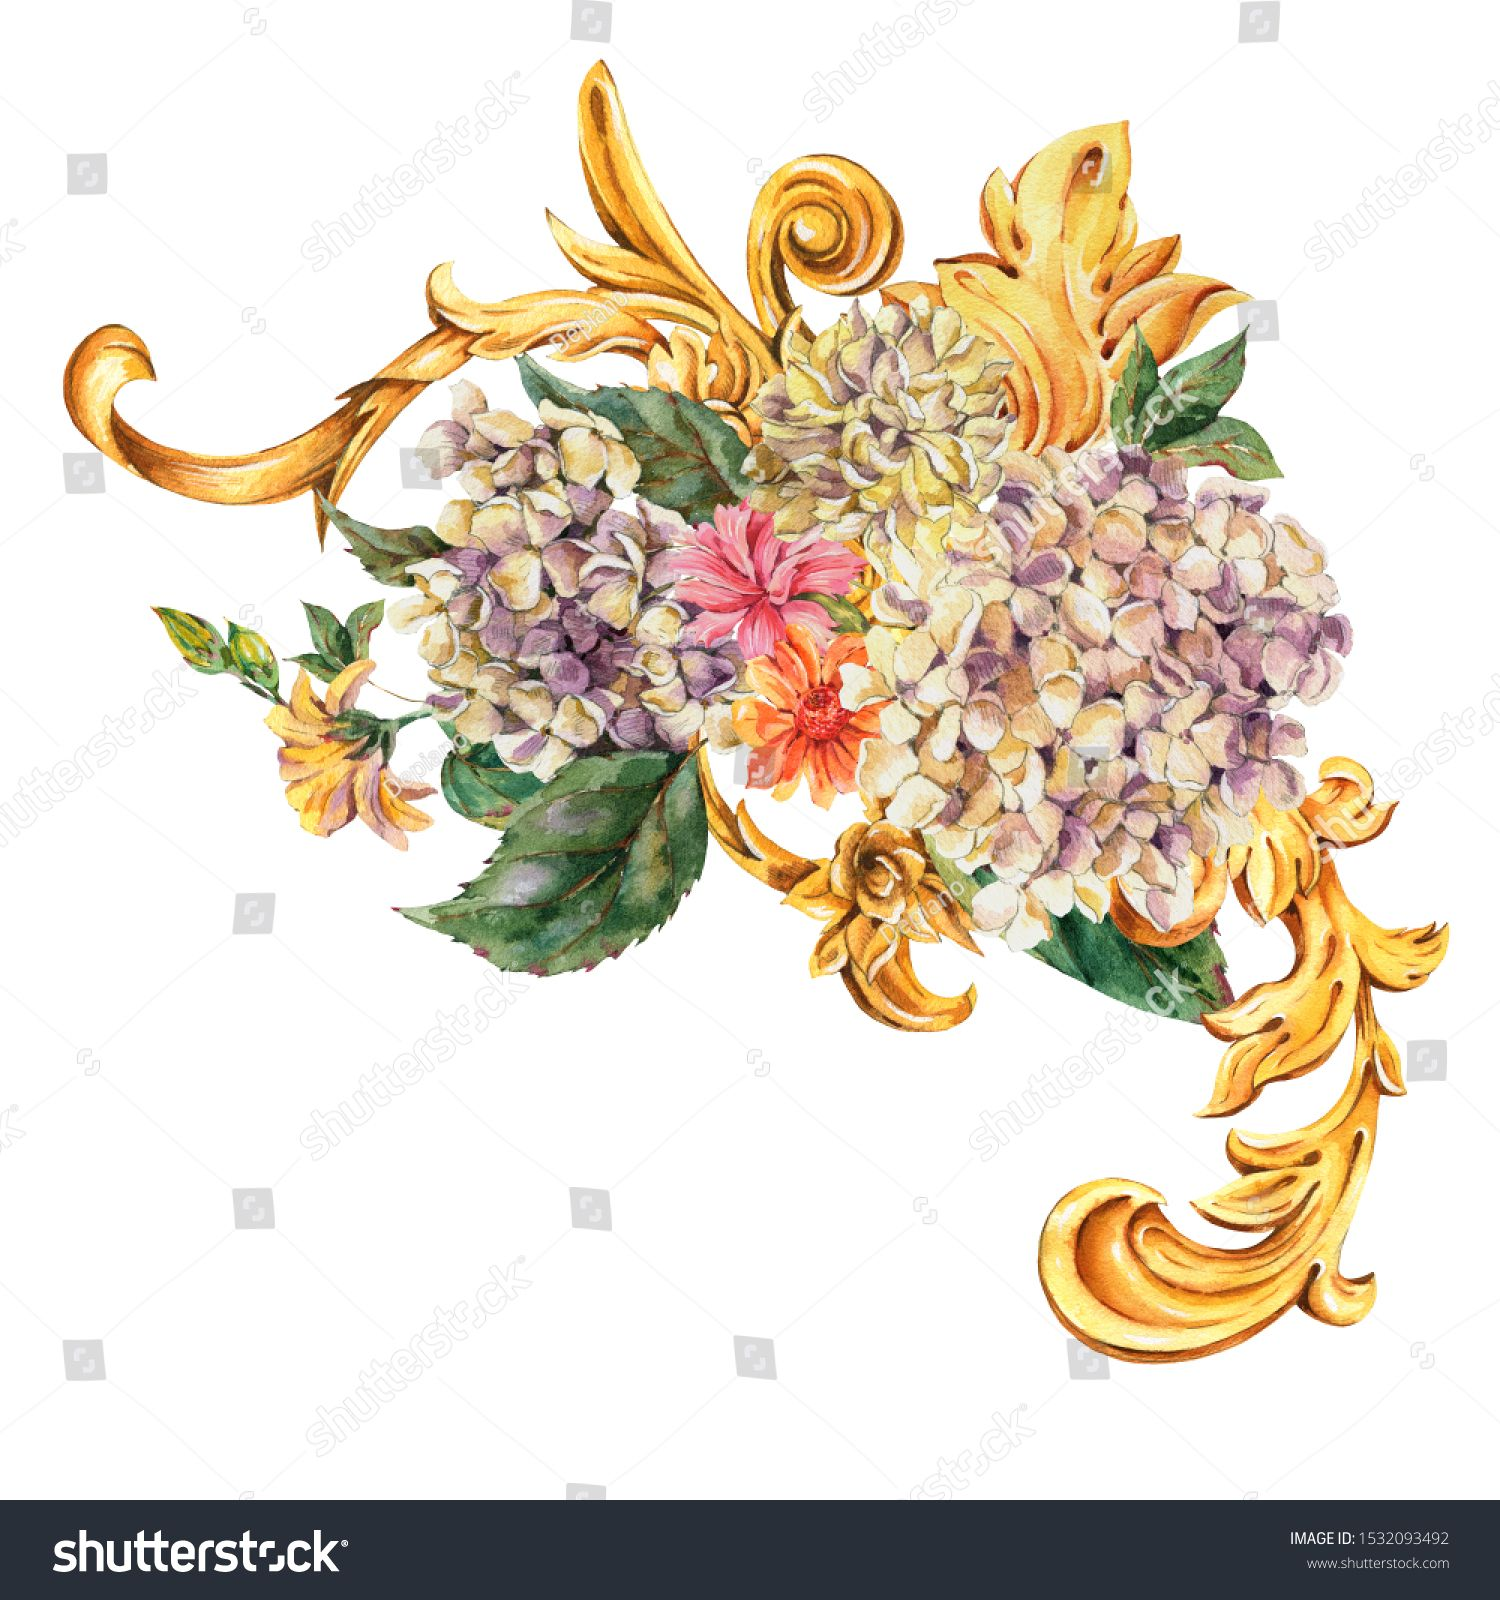 Watercolor Golden Baroque Floral Curl Hydrangea Wild Flowers Rococo Ornament Element Natural Gold Scroll Leaves Isolated In 2020 Vintage Flowers Floral Watercolor